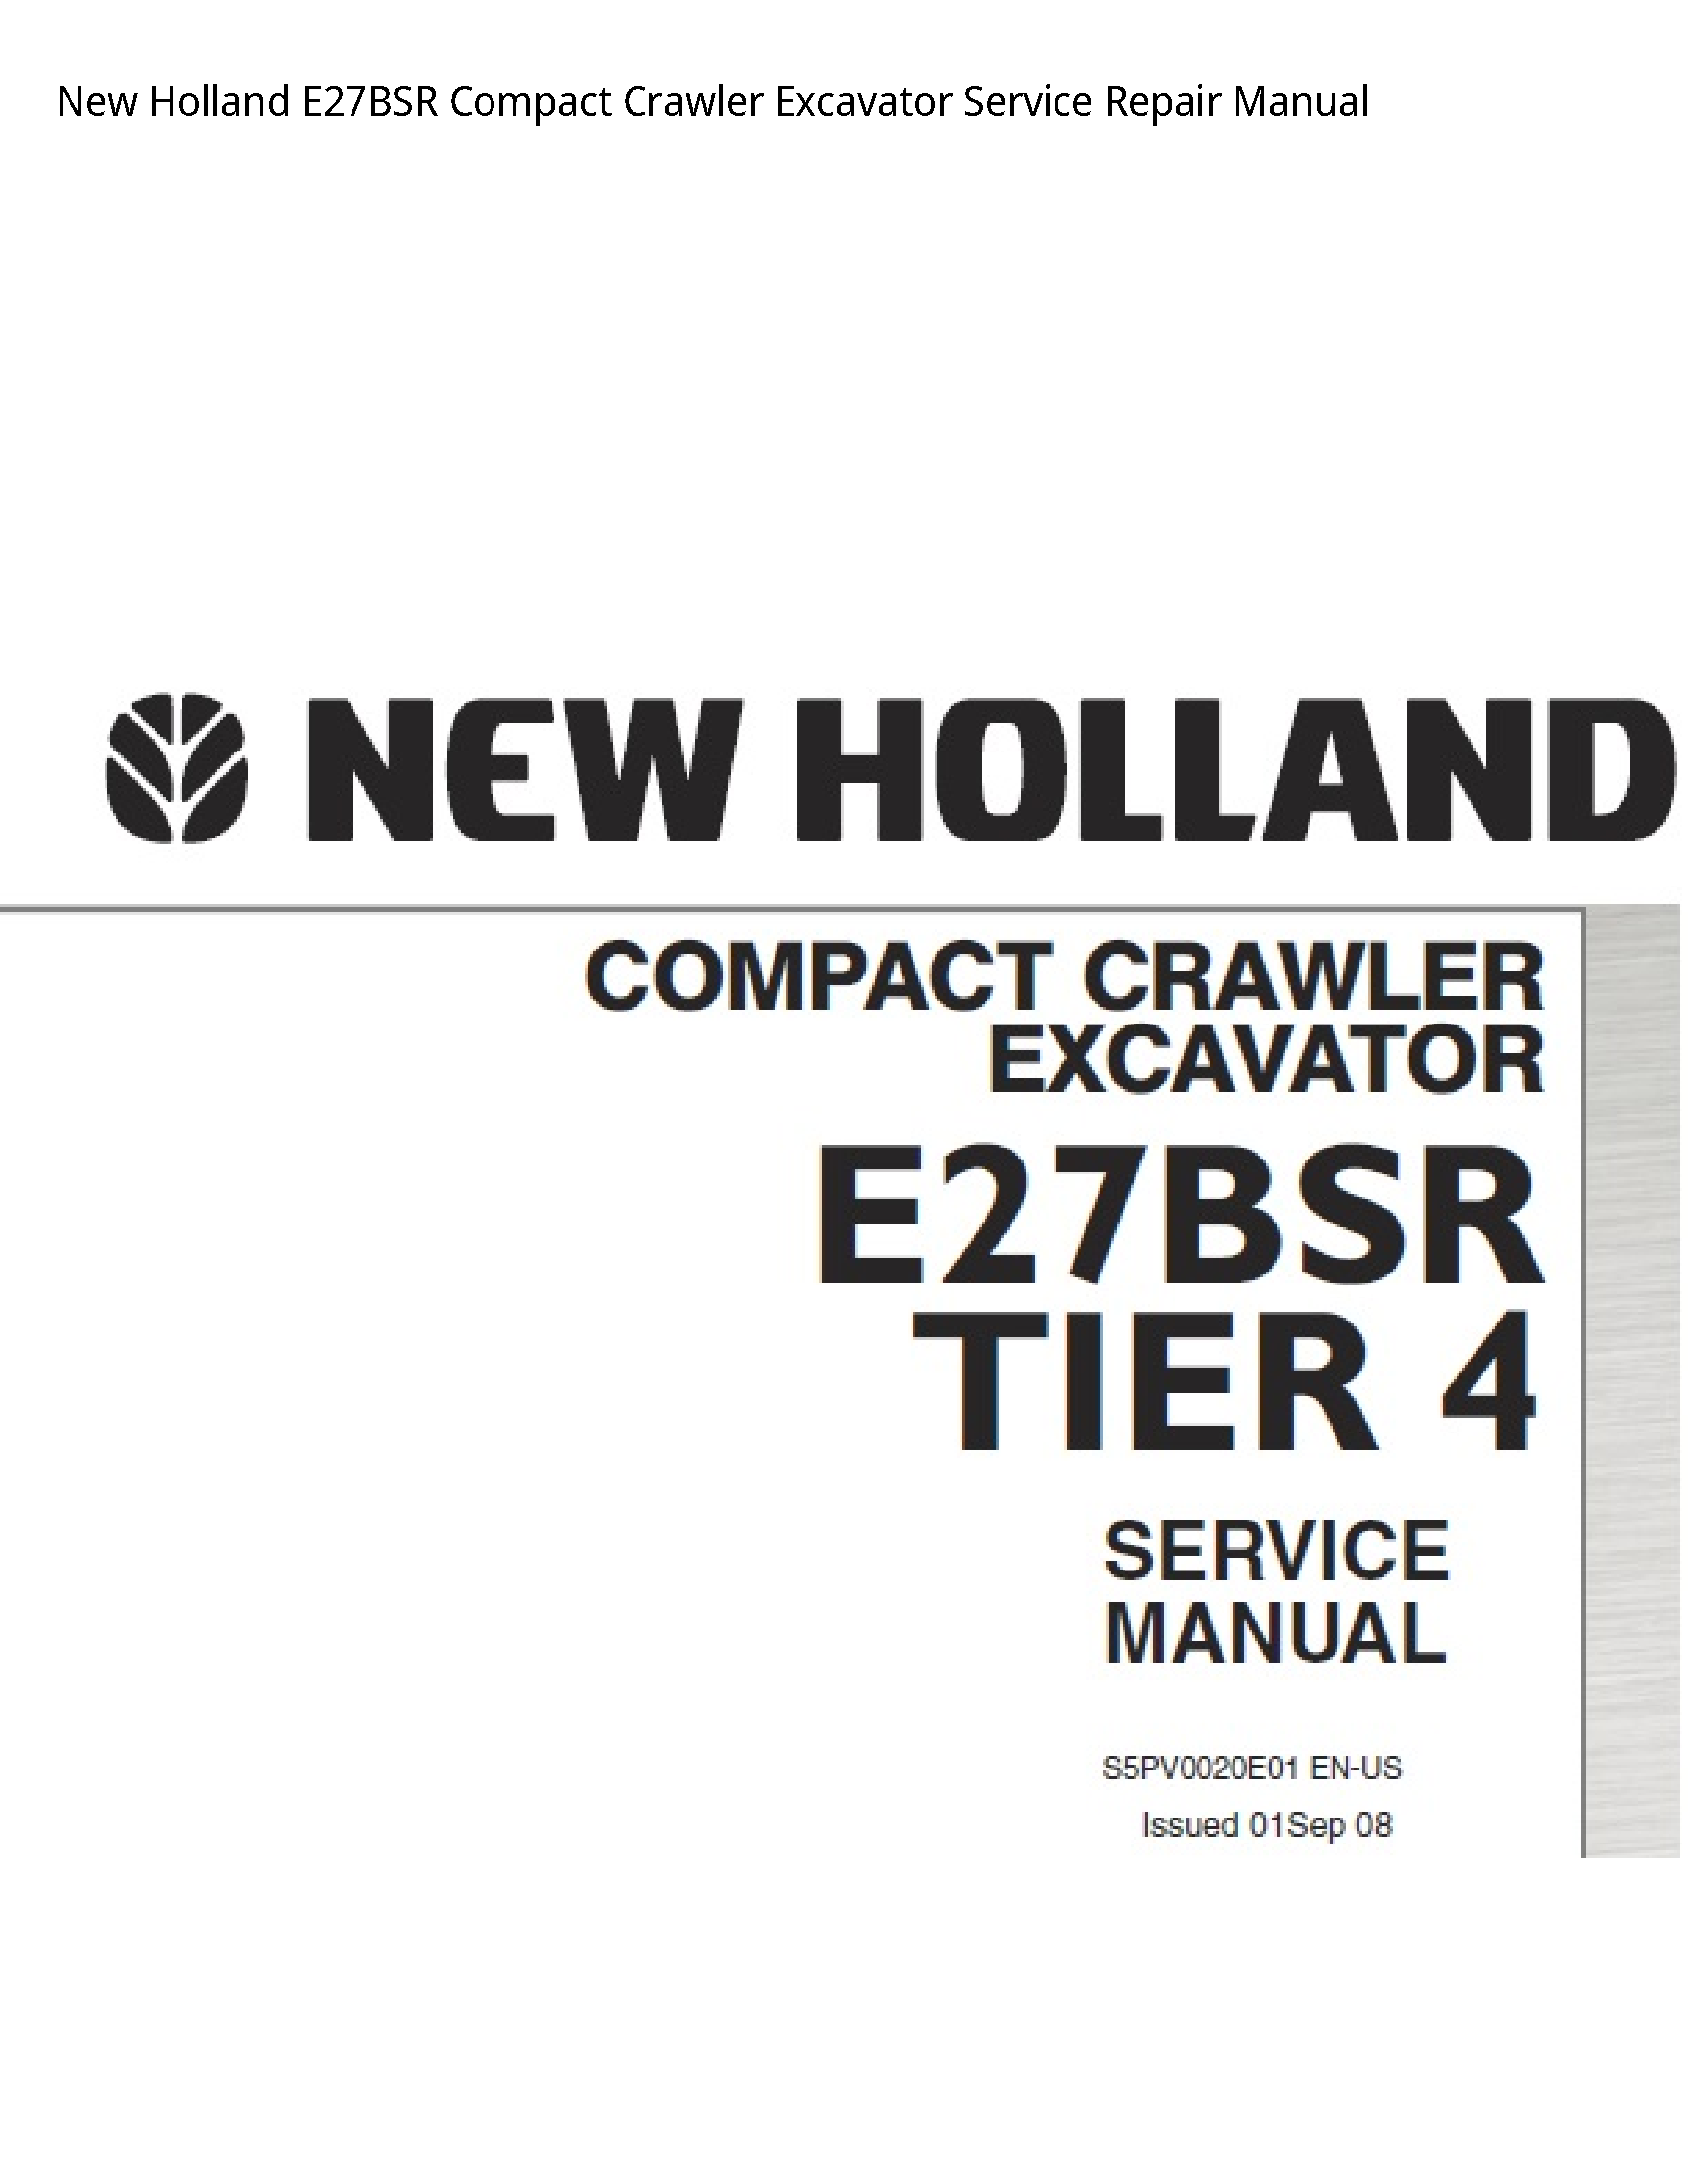 New Holland E27BSR Compact Crawler Excavator manual